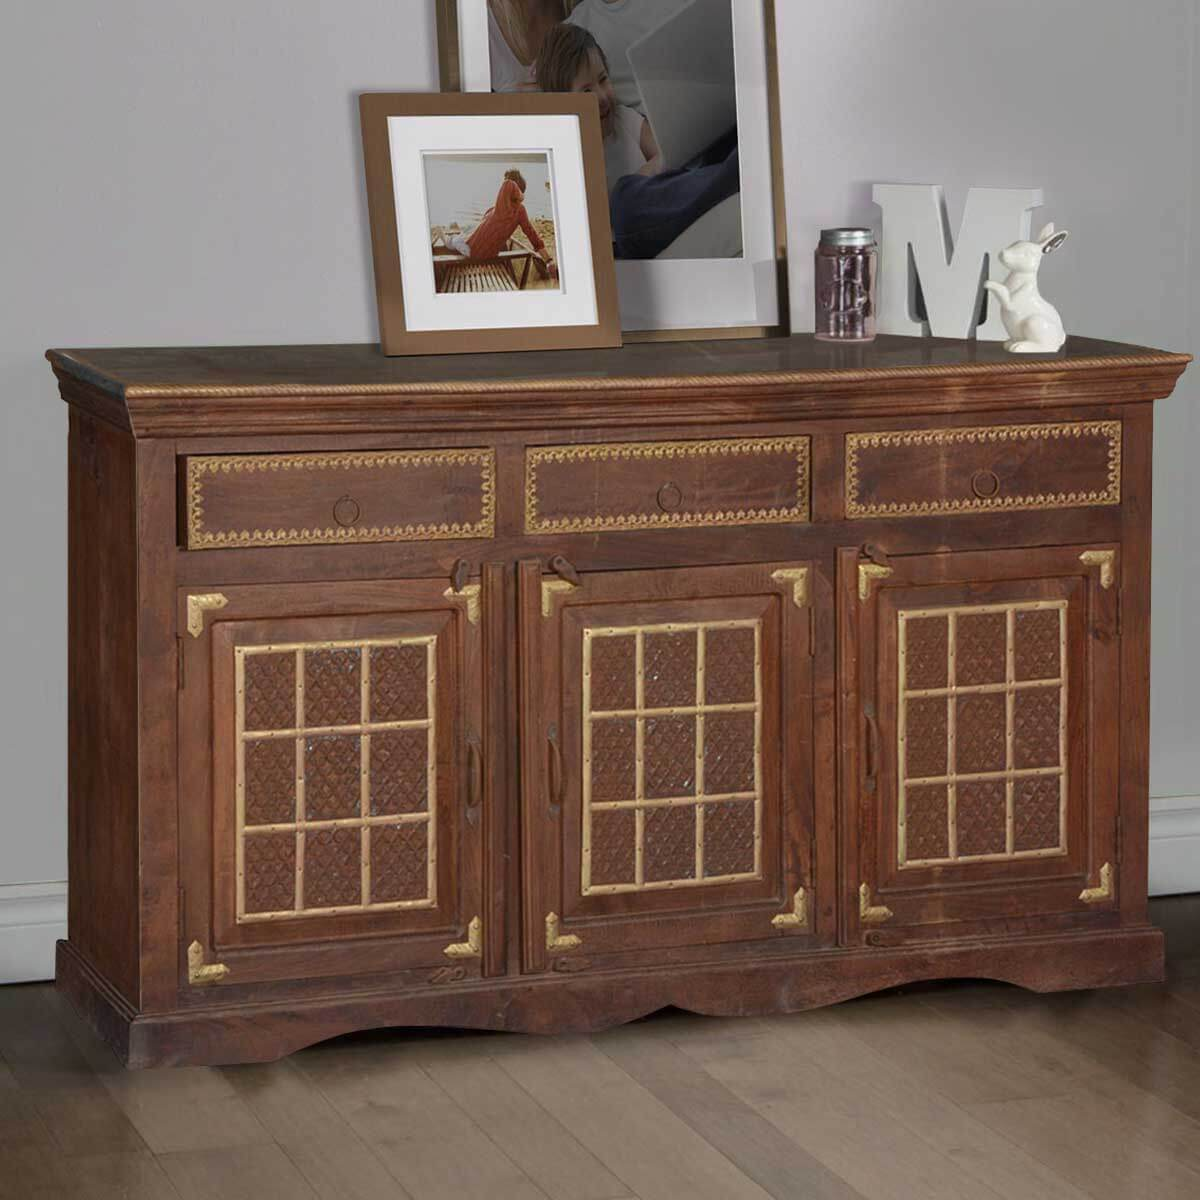 Sheridan Simple Mango Wood Sideboard Buffet Cabinet. Full resolution‎  file, nominally Width 1200 Height 1200 pixels, file with #B28C19.